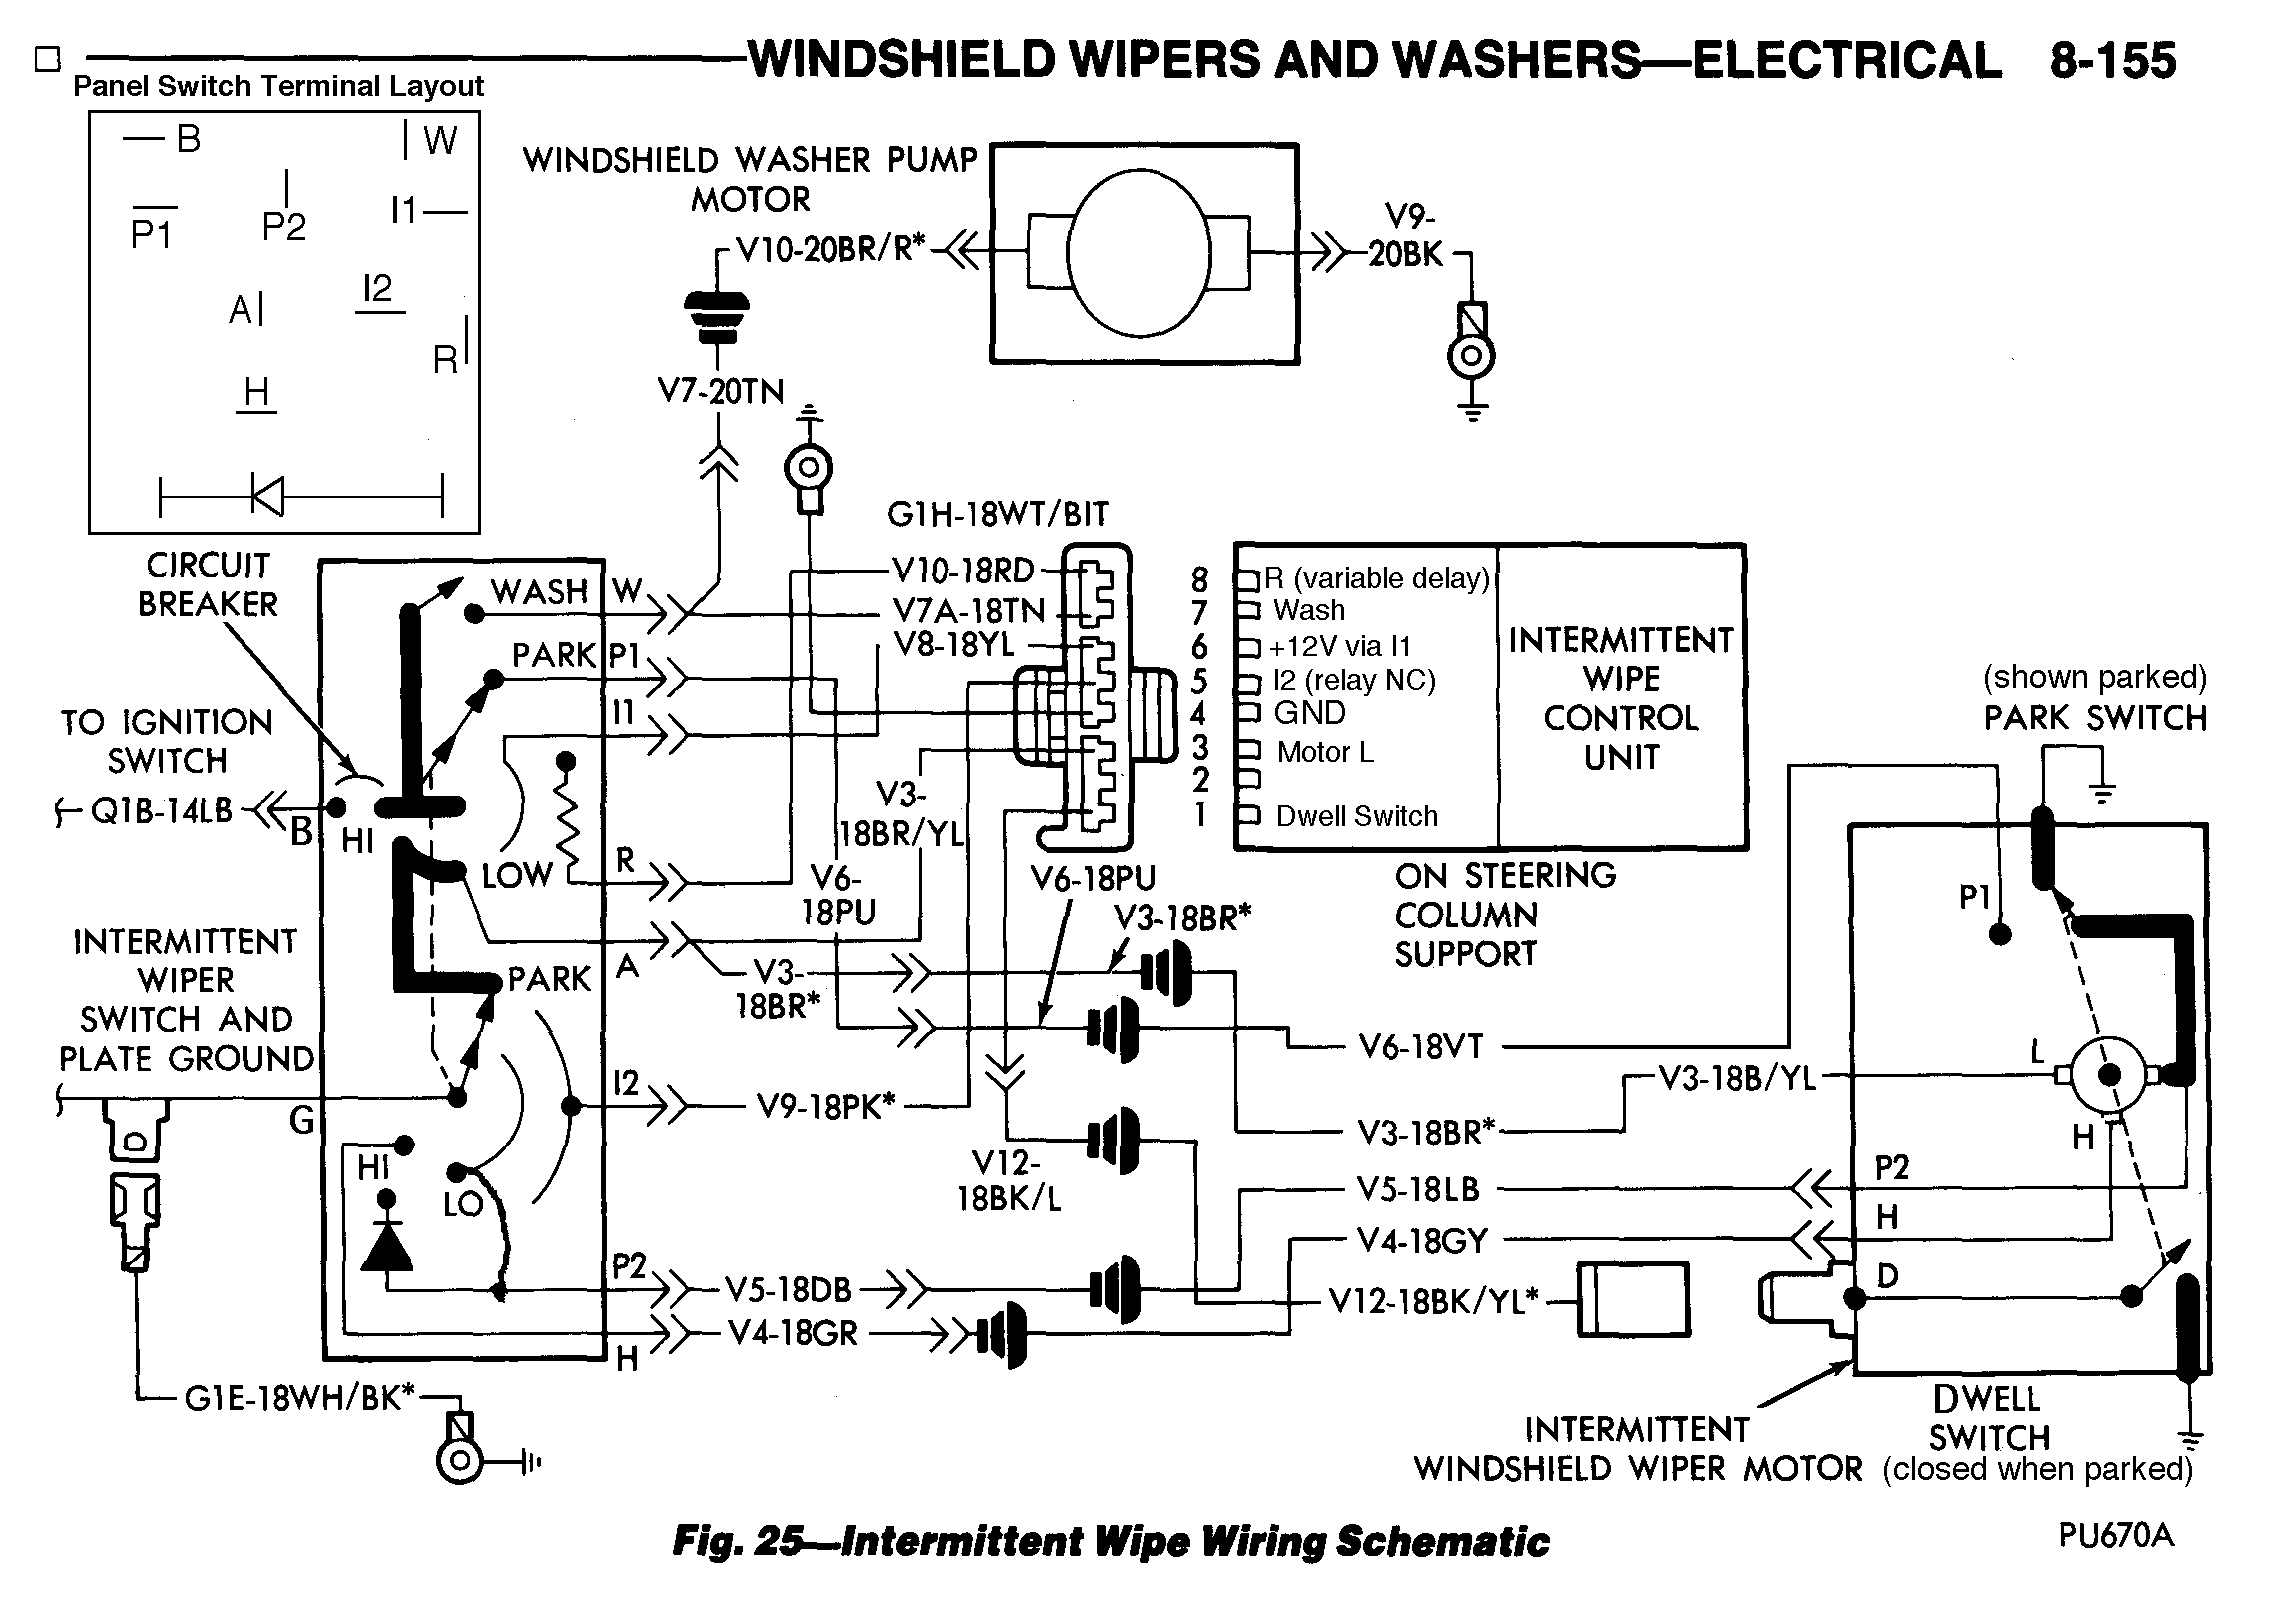 4 Pole Relay Wiring Diagram Wiper - DIY Enthusiasts Wiring Diagrams •